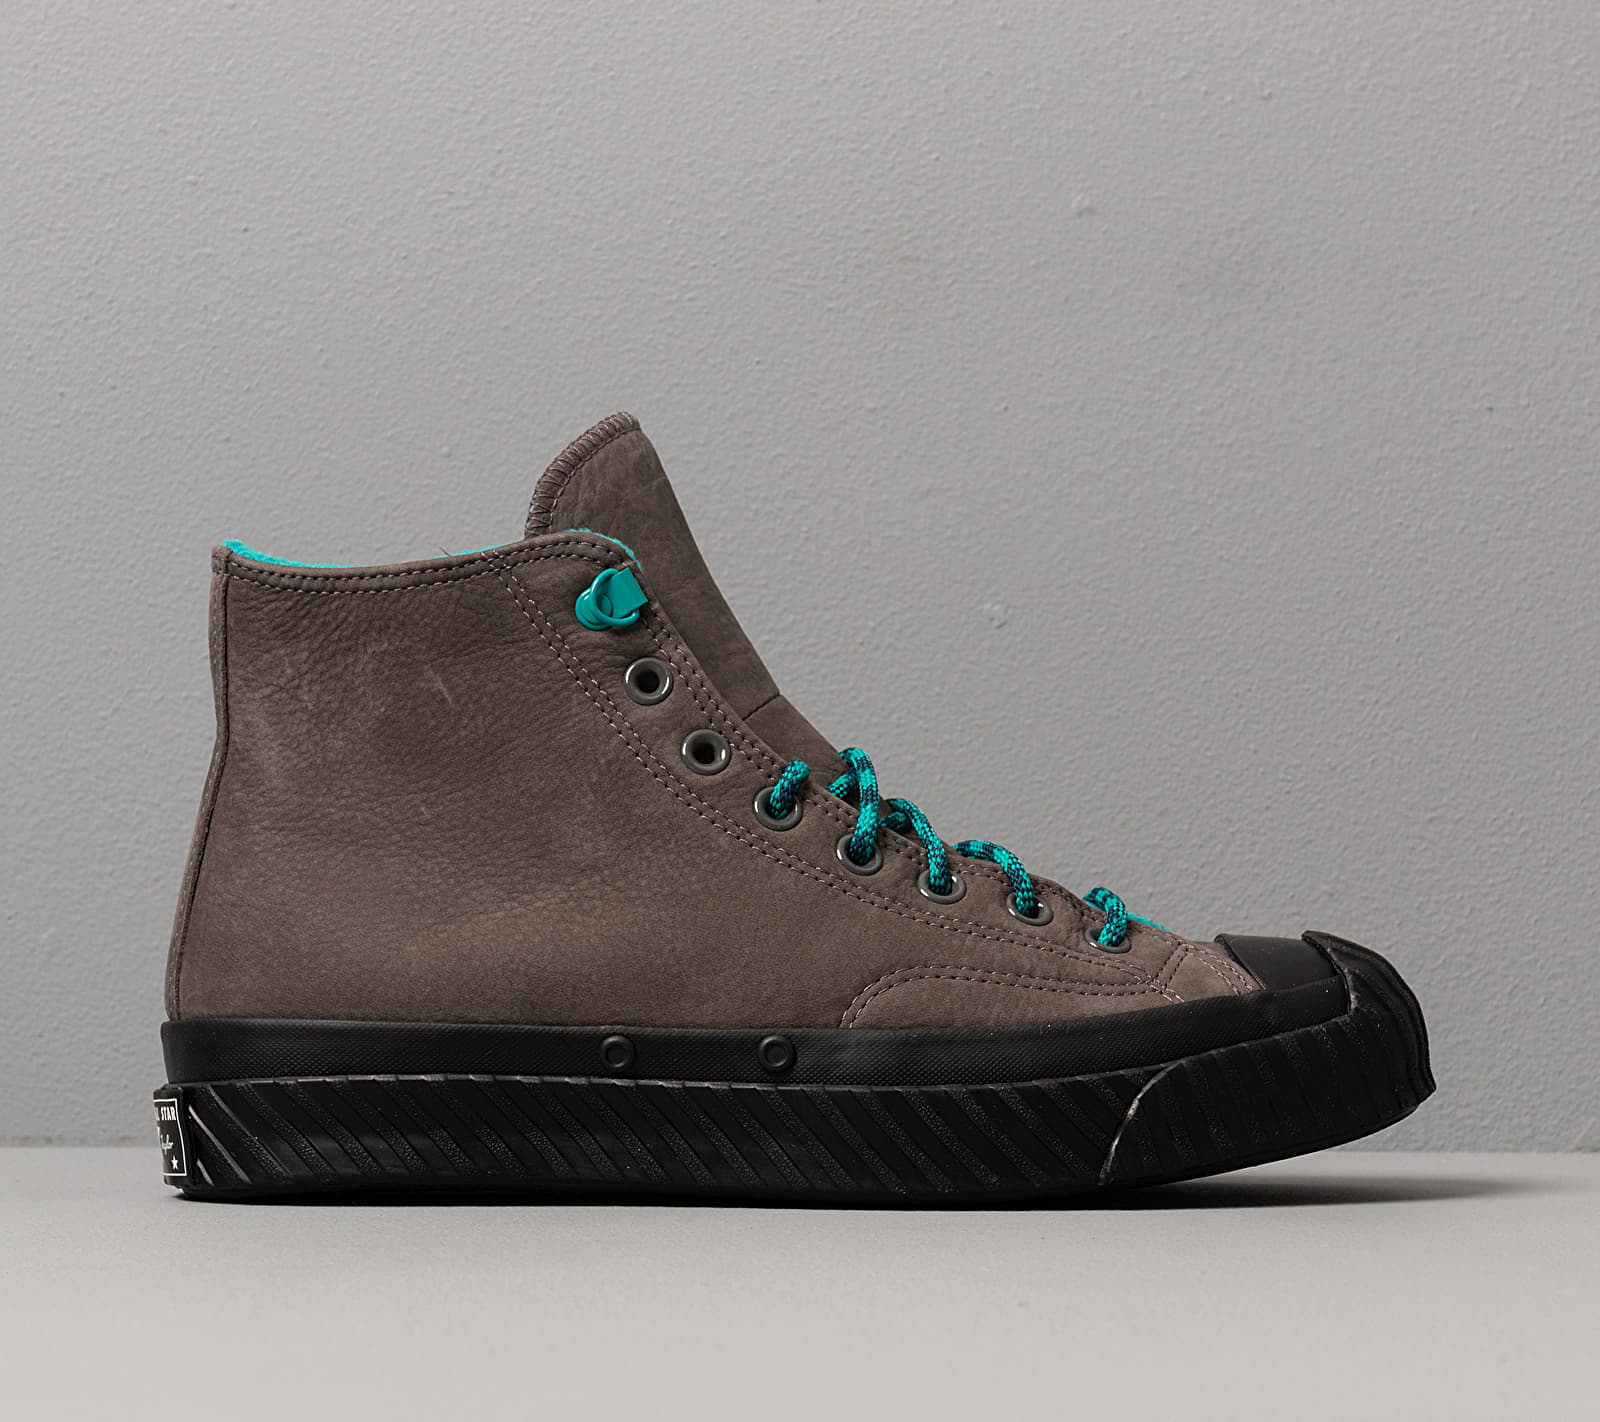 Converse Chuck 70 Bosey Water Repellent Carbon Grey/ Turbo Green/ Black, Gray